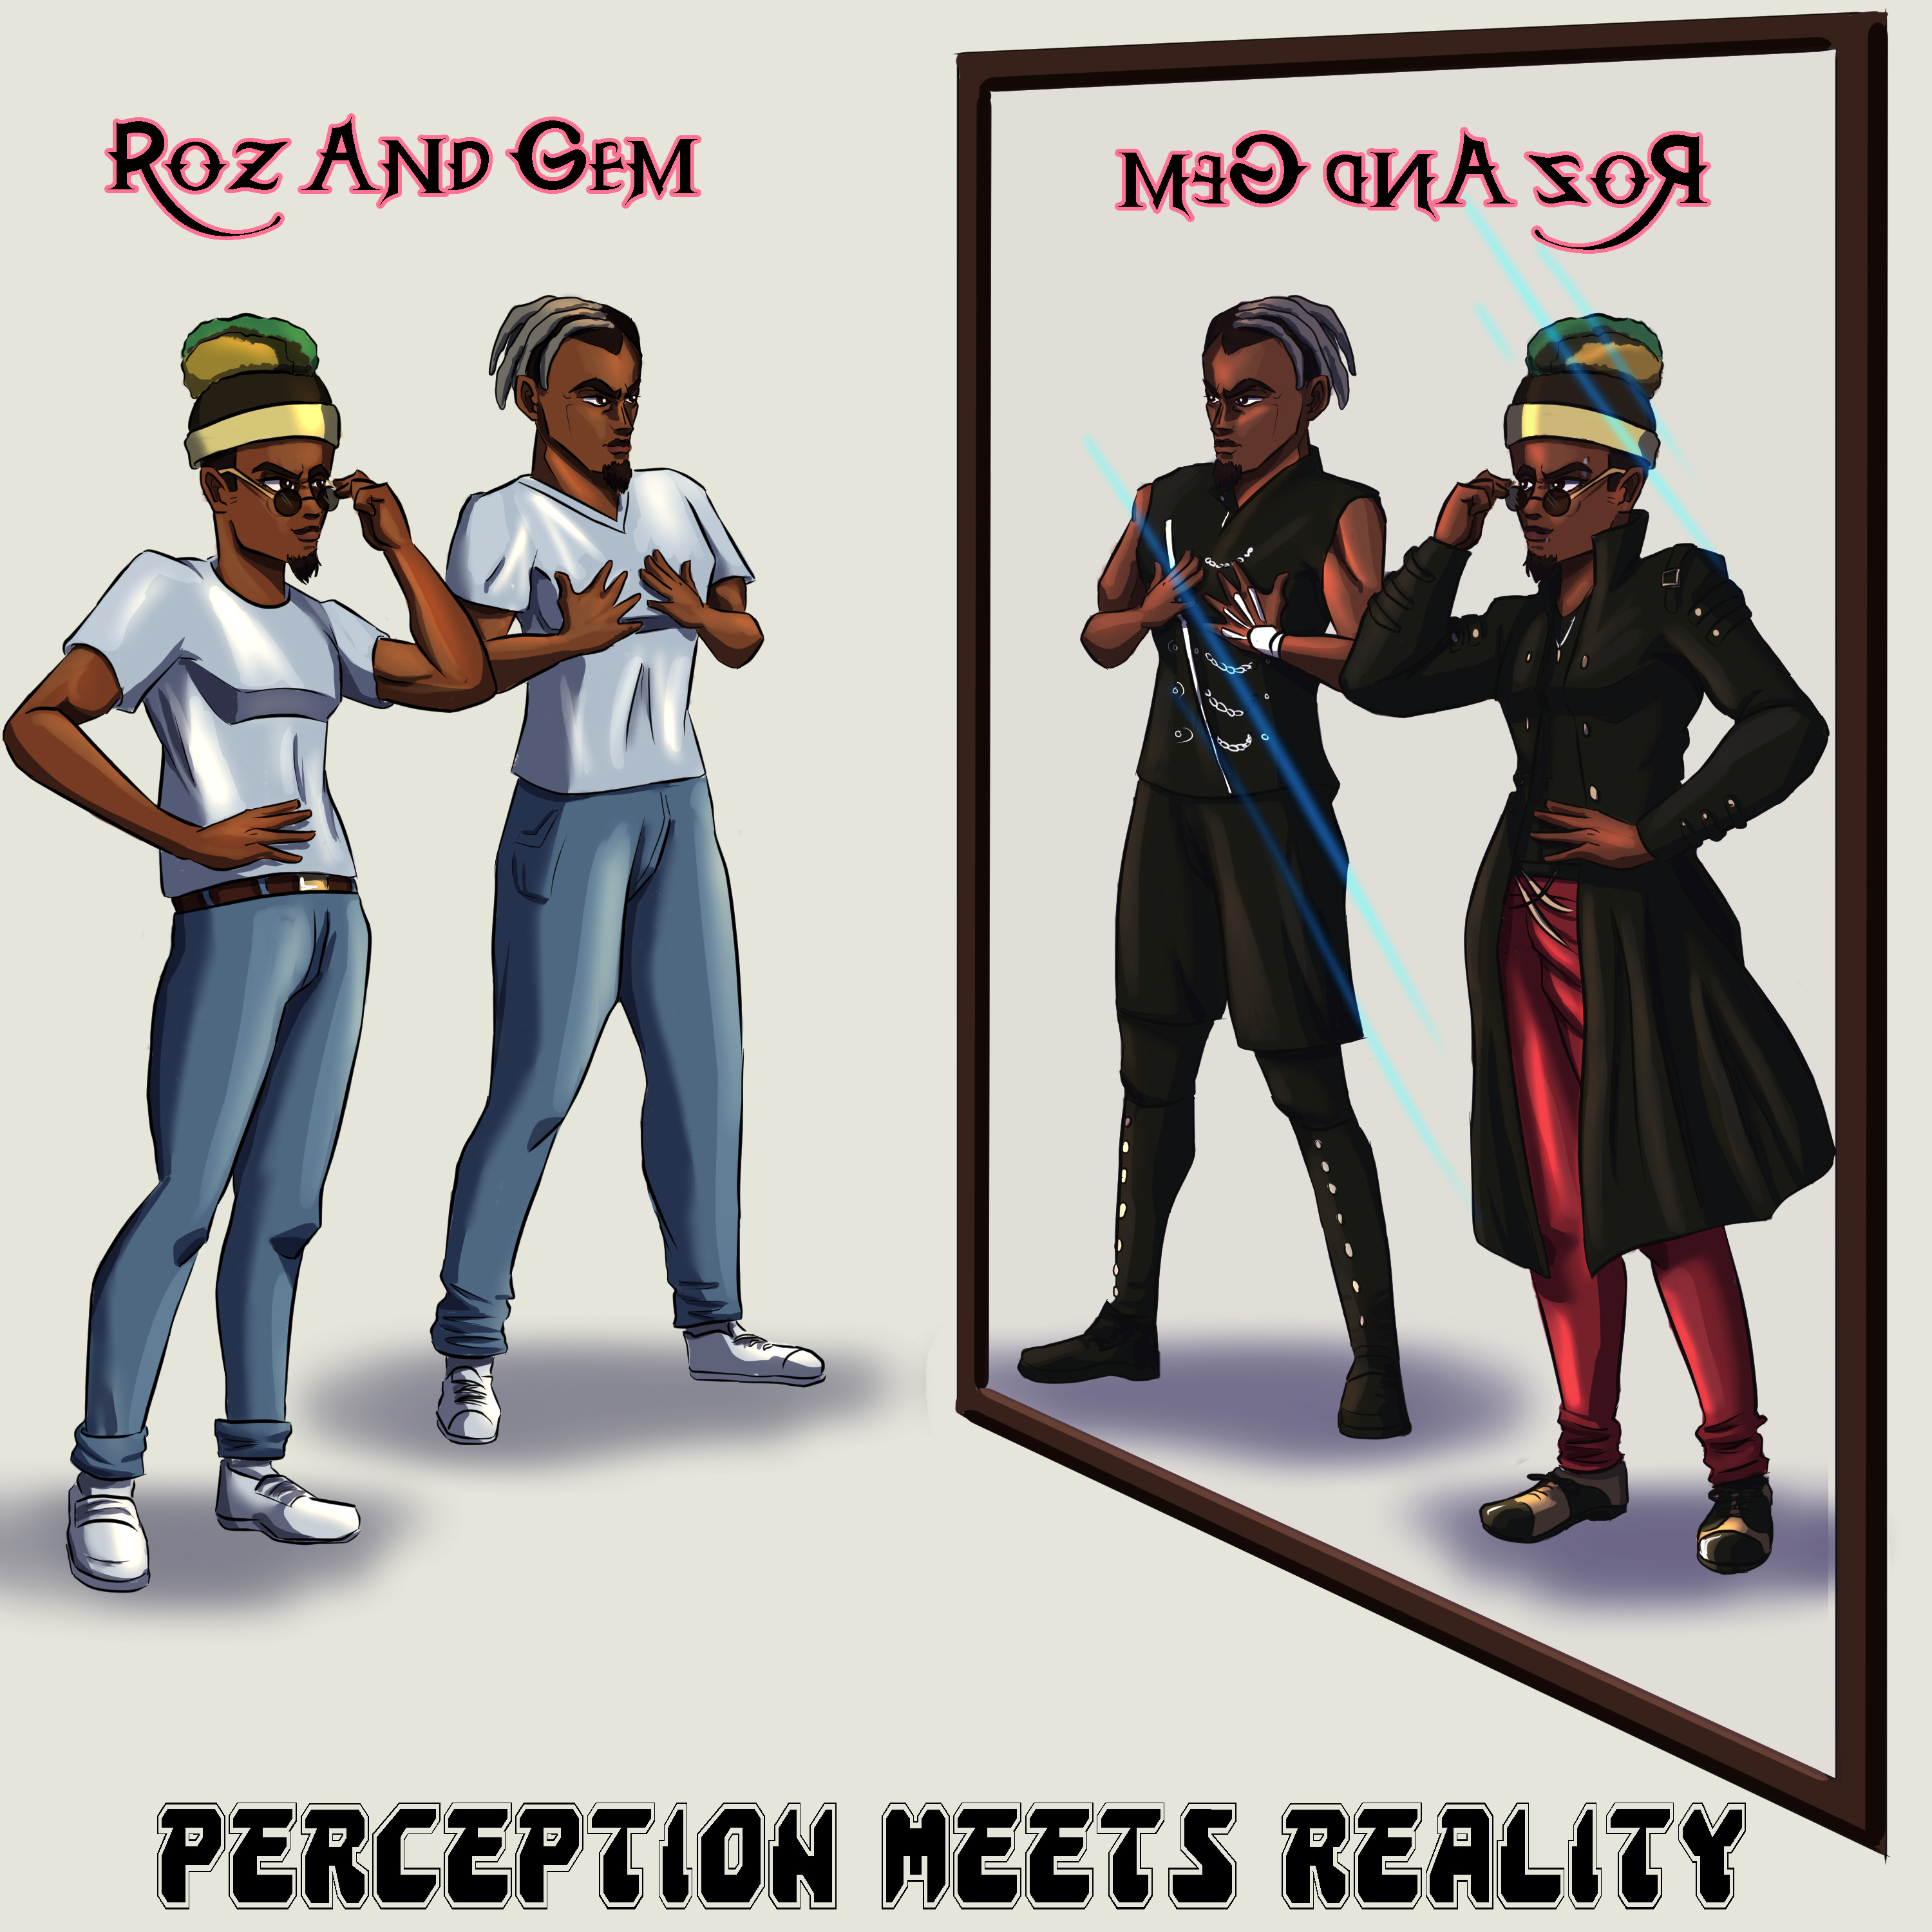 Roz And Gem Gives Back with the Release of Their Album Perception Meets Reality